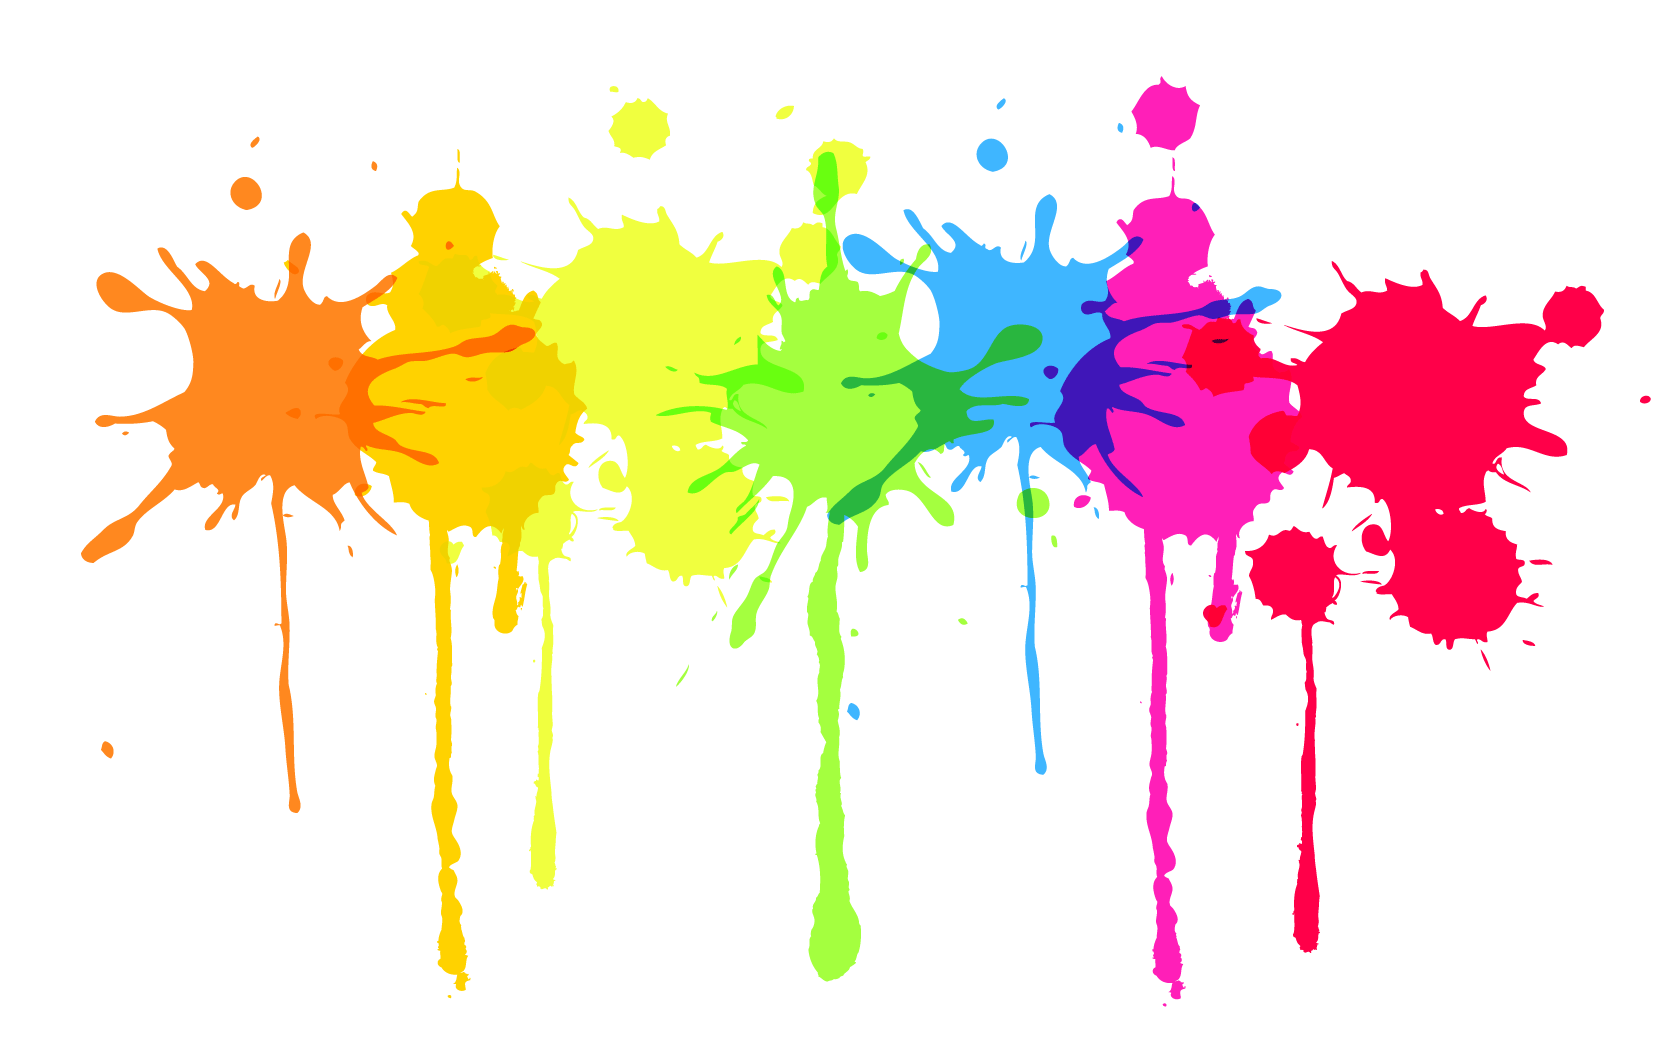 Paint Splatter Backgrounds - ClipArt Best